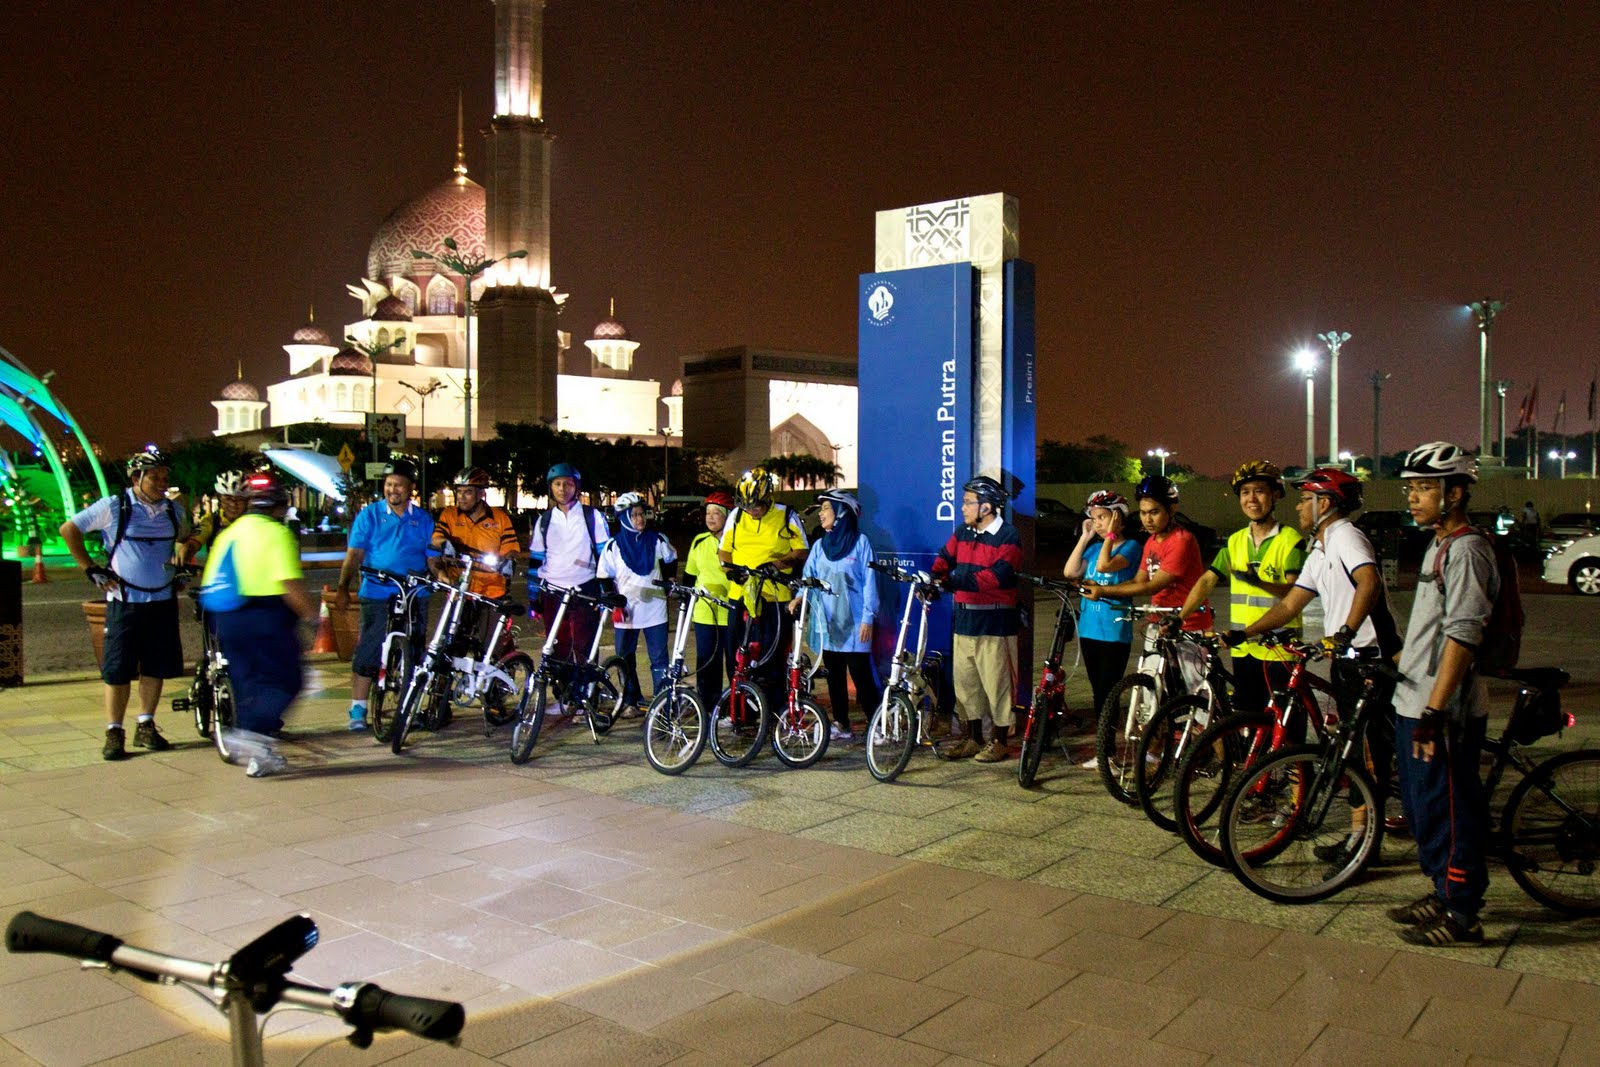 Putrajaya is a popular destination for night cyclers so you won't feel alone on New Year's Eve.